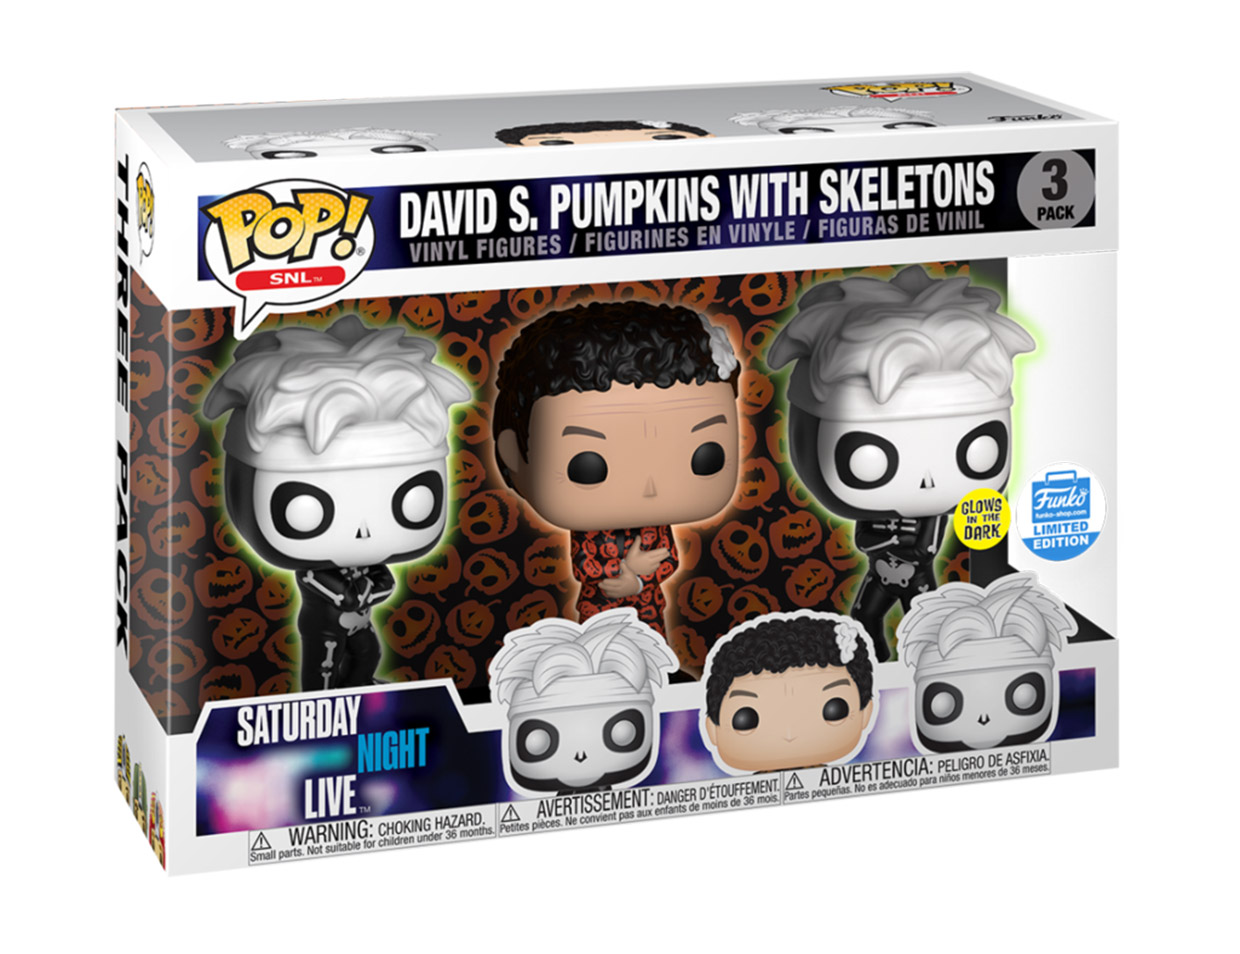 Funko POP! x David S. Pumpkins